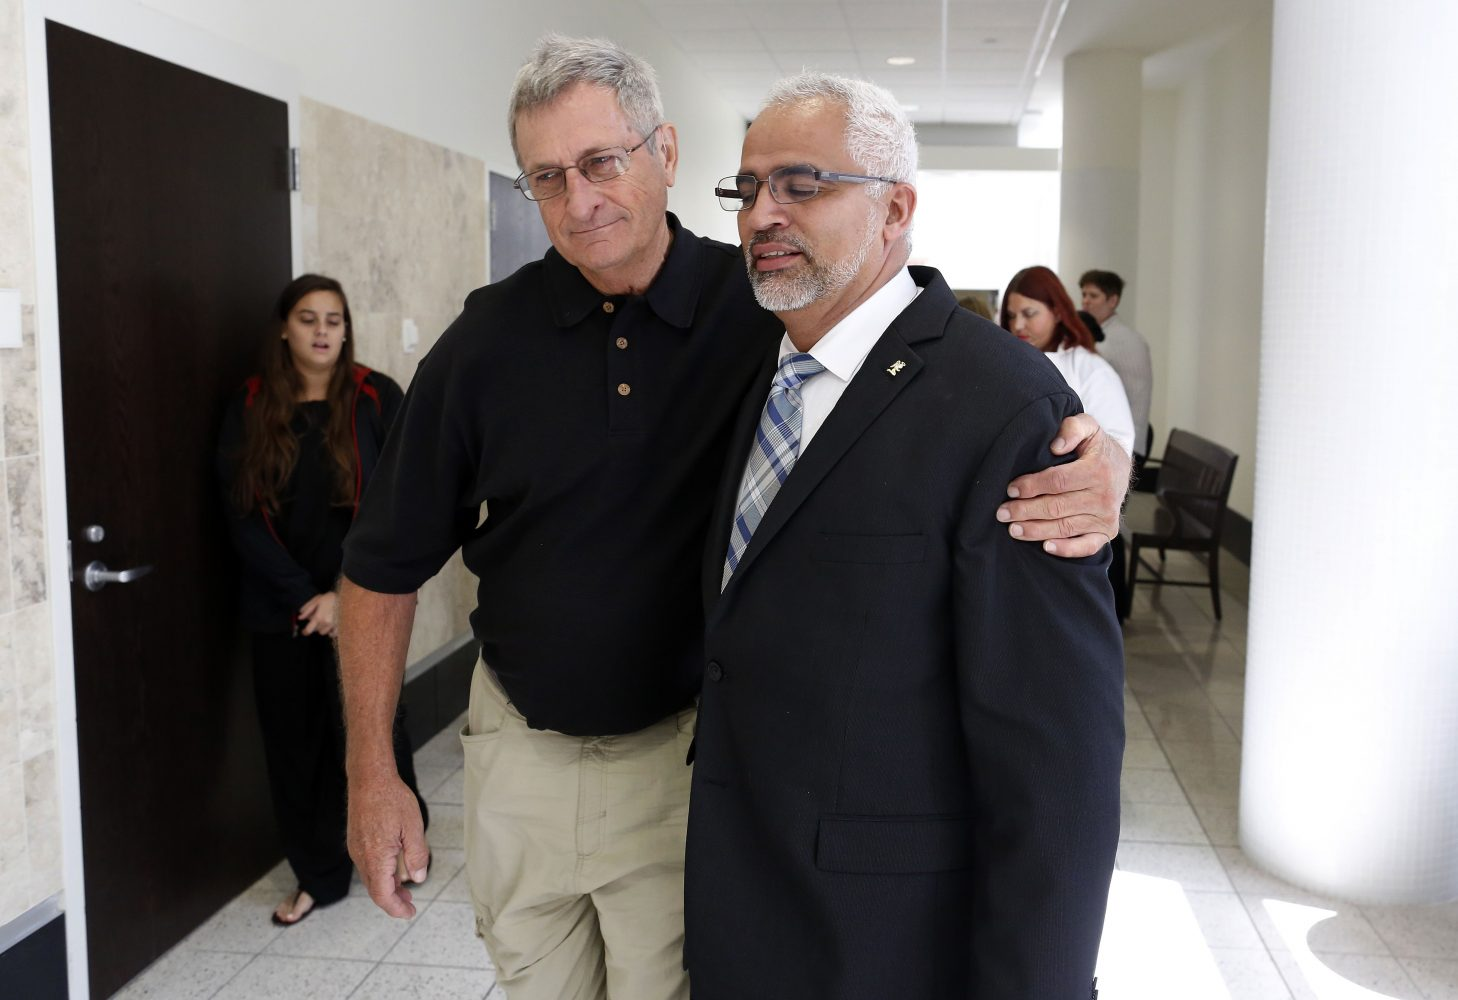 """Carlos Aguilar, the father of Christian Aguilar, is hugged by family friend Tom Tumbleson during a lunch recess following the prosecution's opening statements in the case against Pedro Bravo in courtroom 1B of the Alachua County Criminal Justice Center Tuesday, August 5, 2014.  Aguilar said Tumbleson is his """"Angel"""", because he was the first person to contact them and look for Christian.  Bravo is accused of murdering his son.  (Doug Finger/The Gainesville Sun/Pool)"""